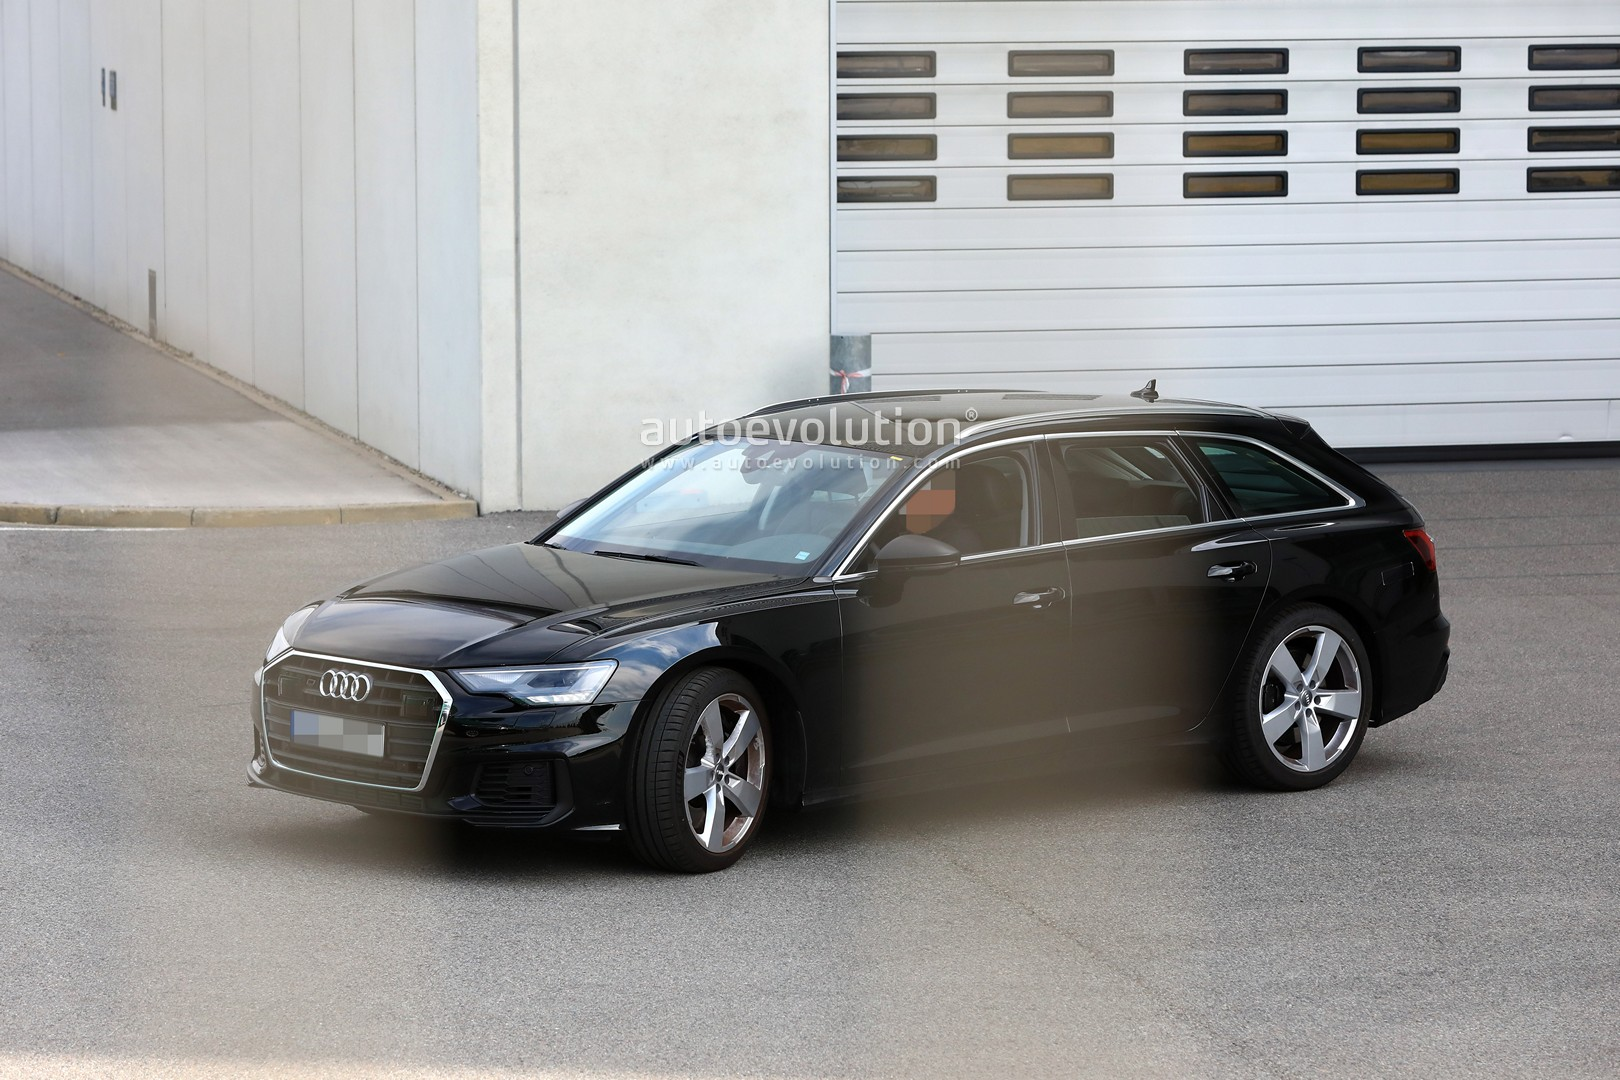 2017 - [Audi] A6 Berline & Avant [C8] - Page 10 2020-audi-s6-avant-spied-with-no-camo-looks-very-understated_4